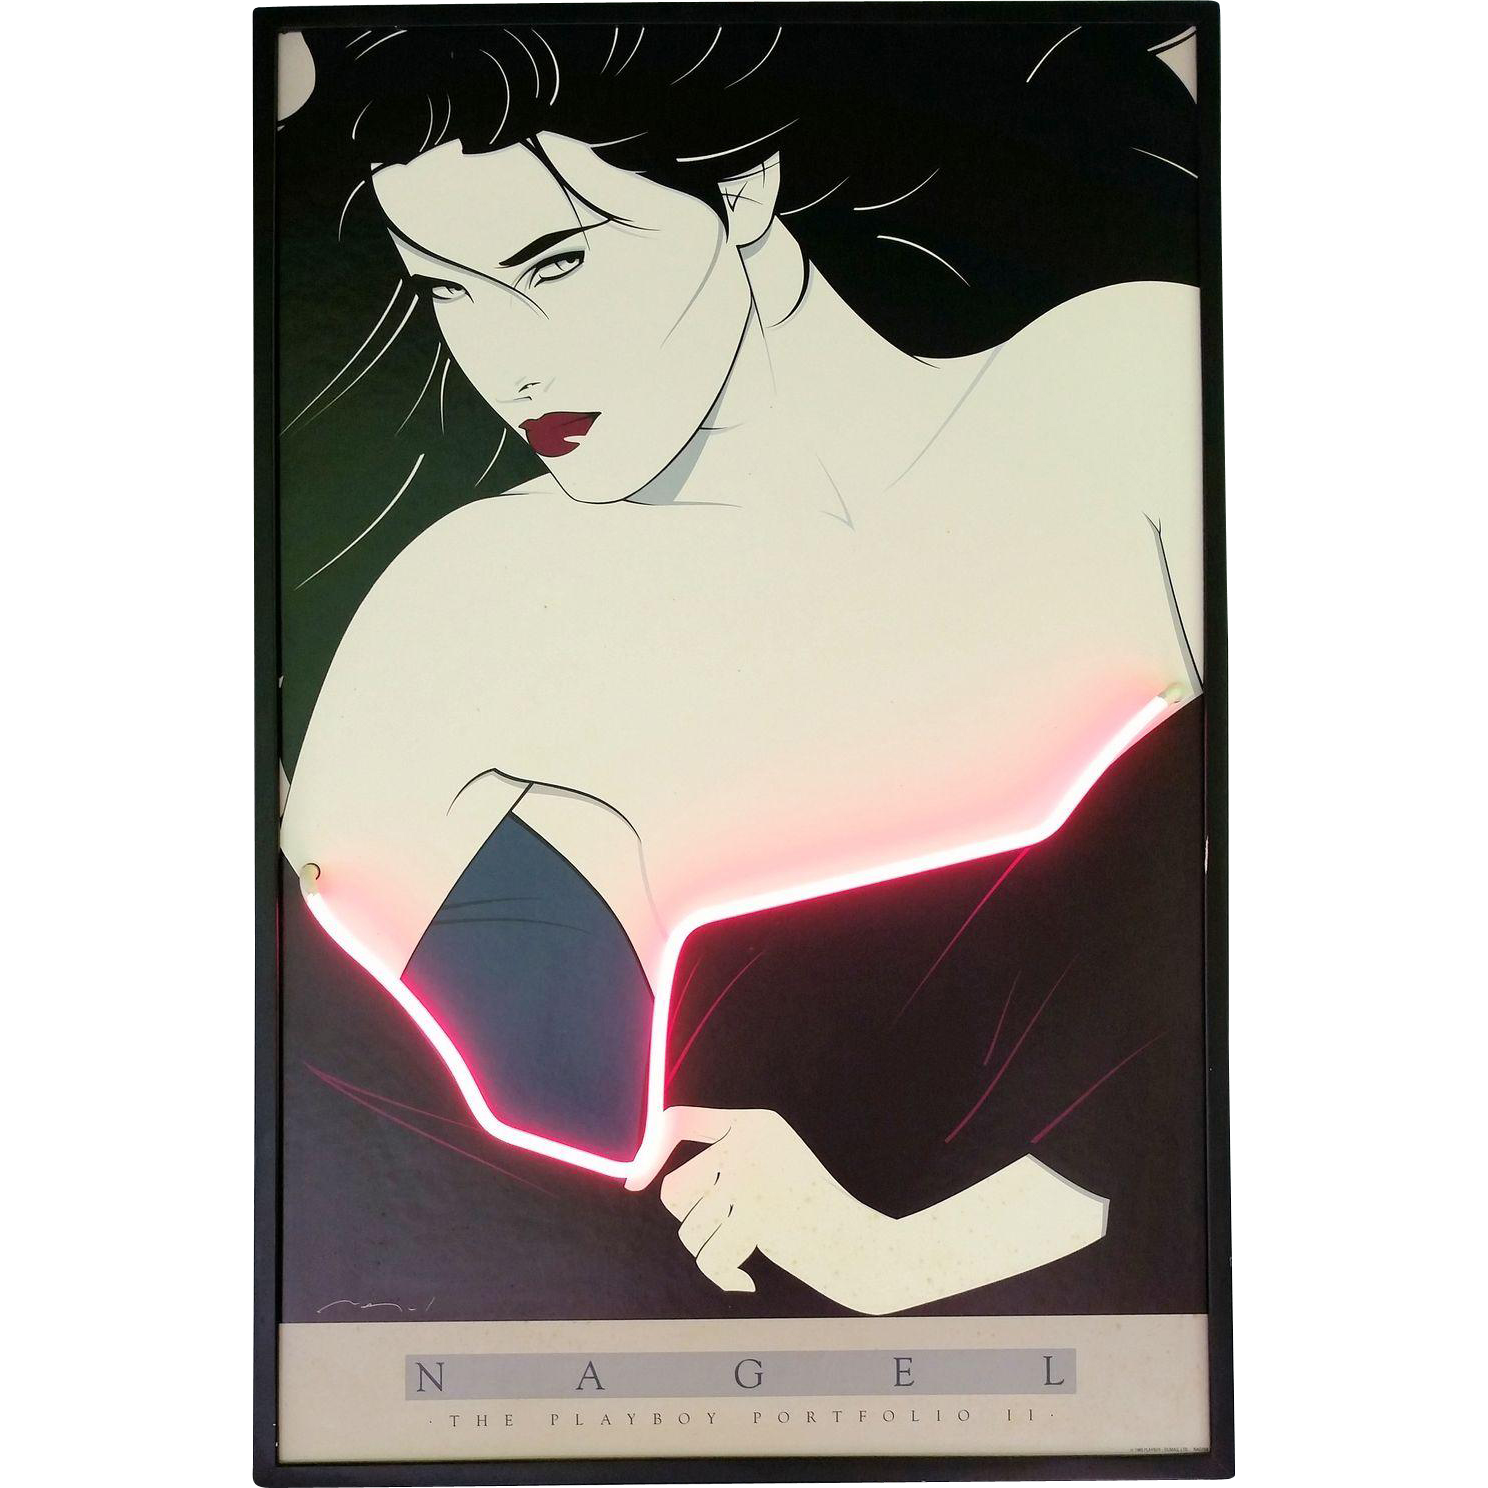 Nagel Playboy Portfolio II Poster with Neon Light Accent